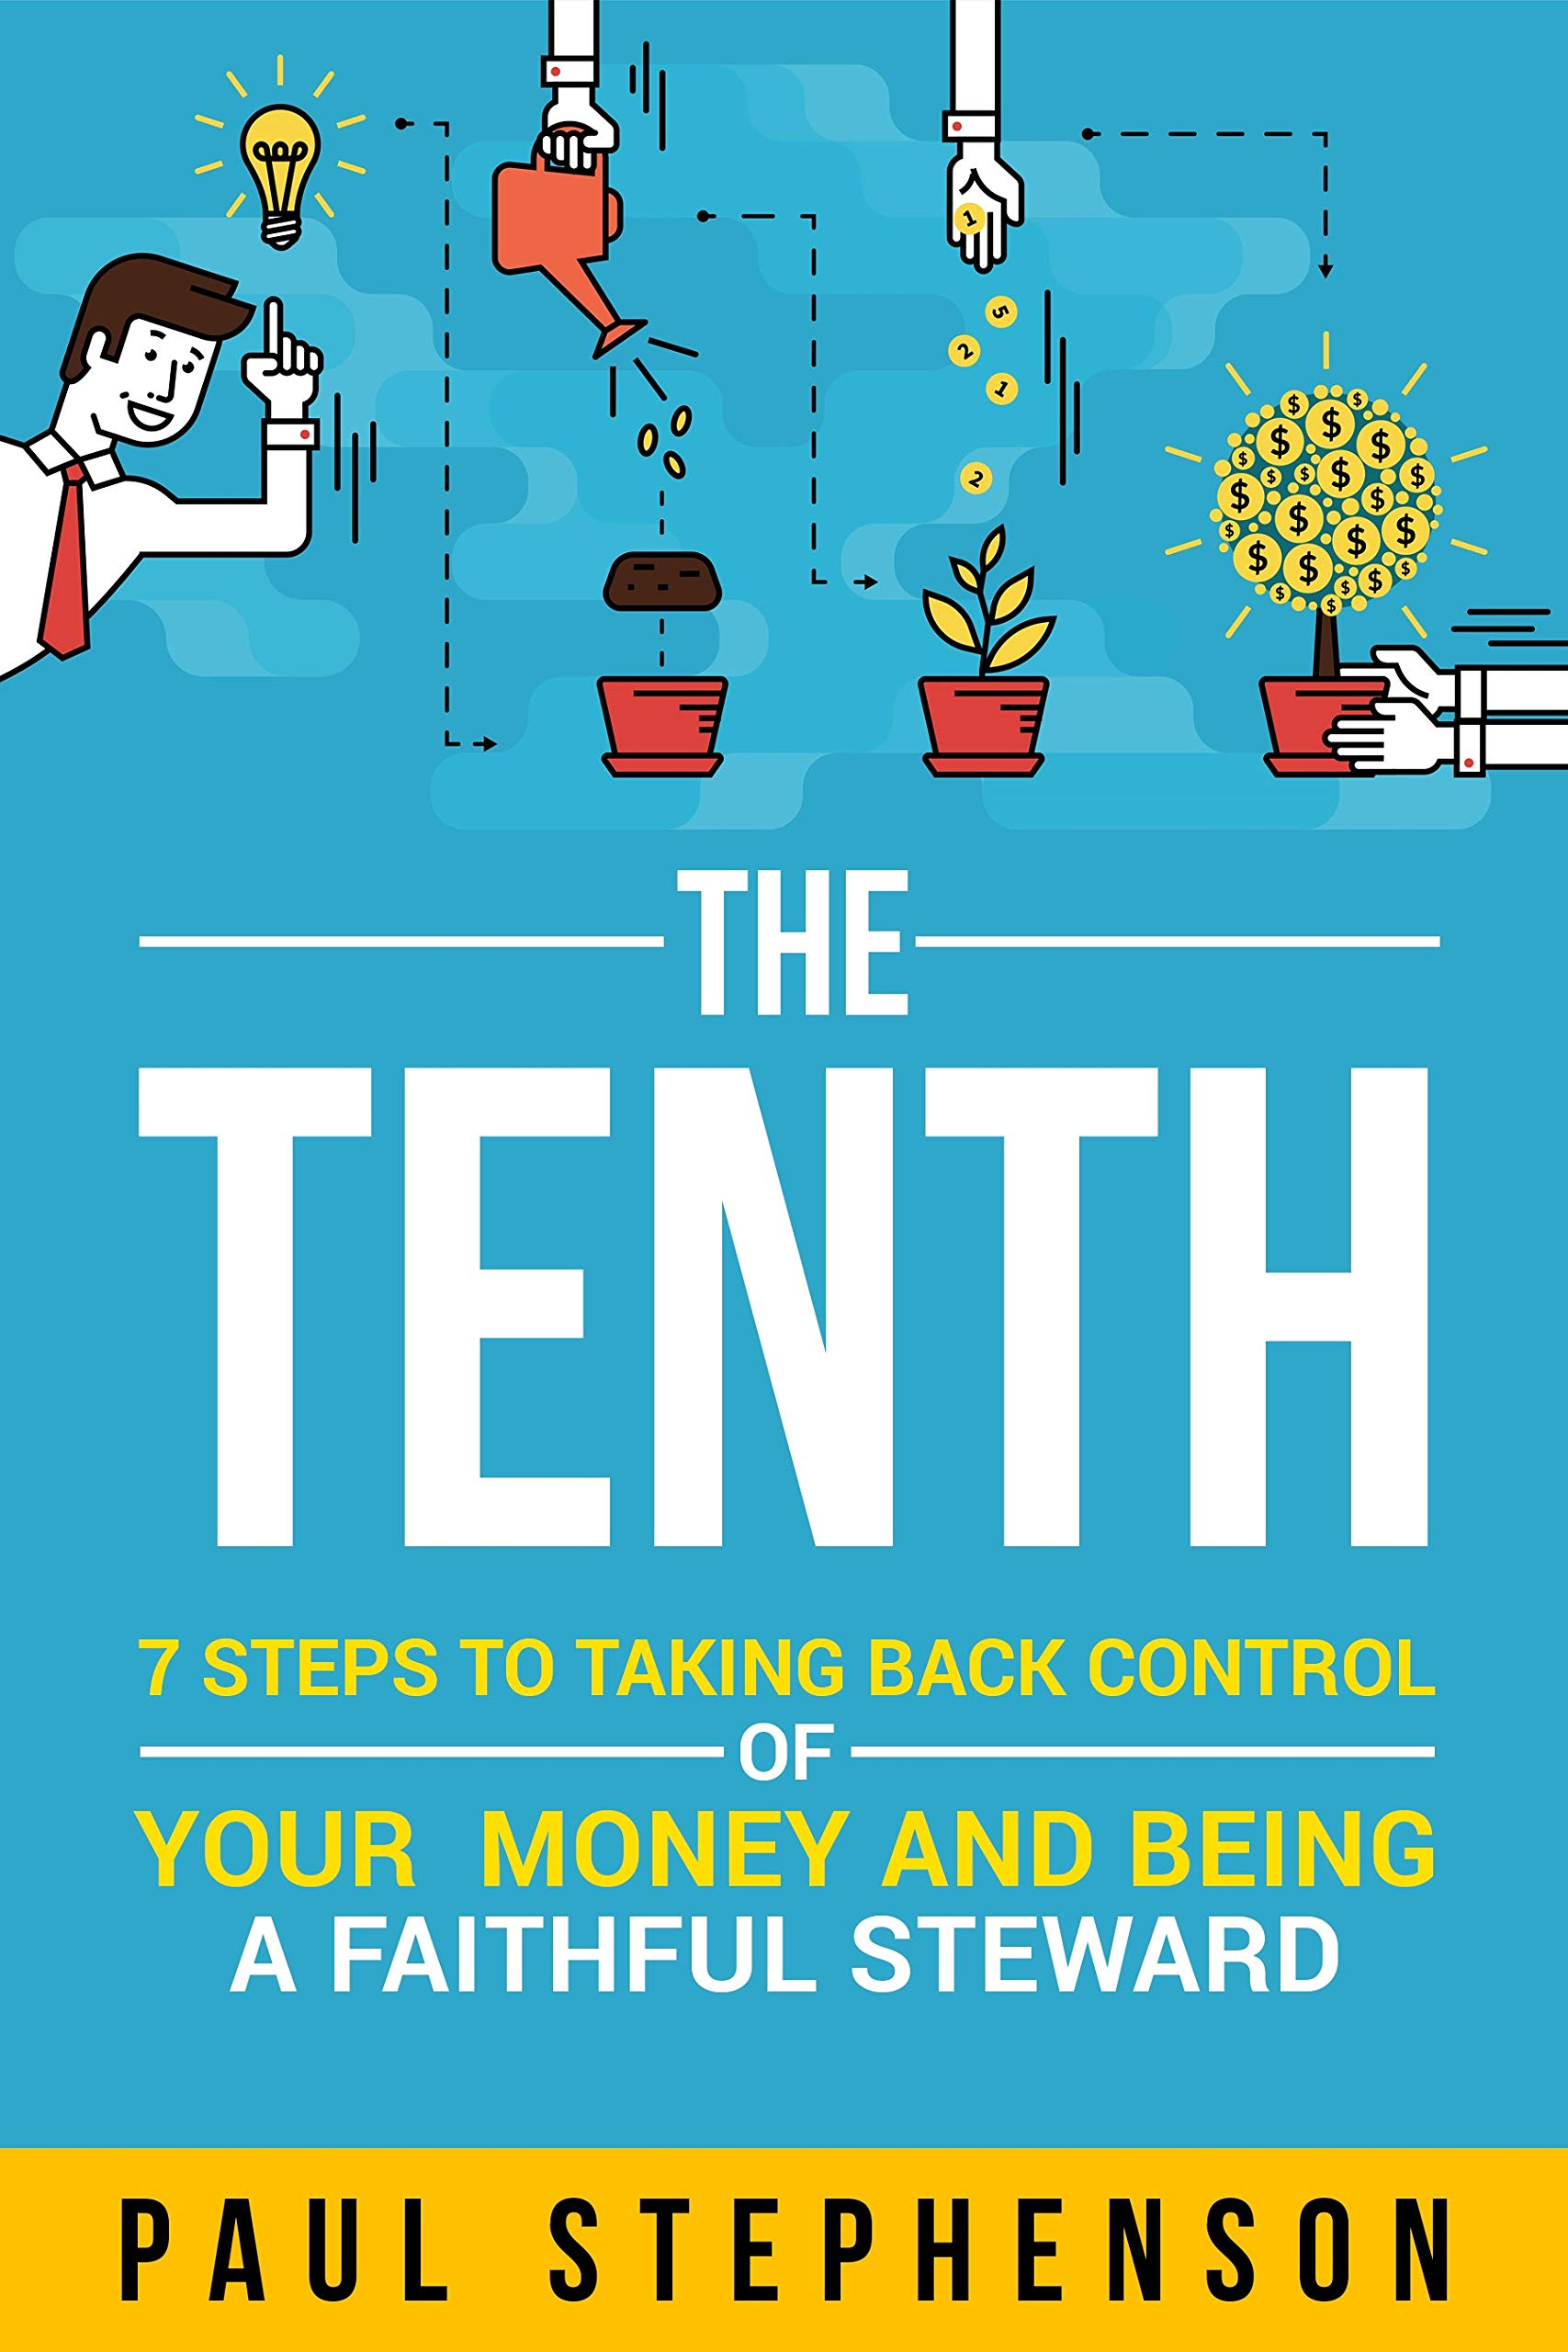 The Tenth: 7 Steps to Taking Back Control of Your Money and Being a Faithful Steward Paul Stephenson